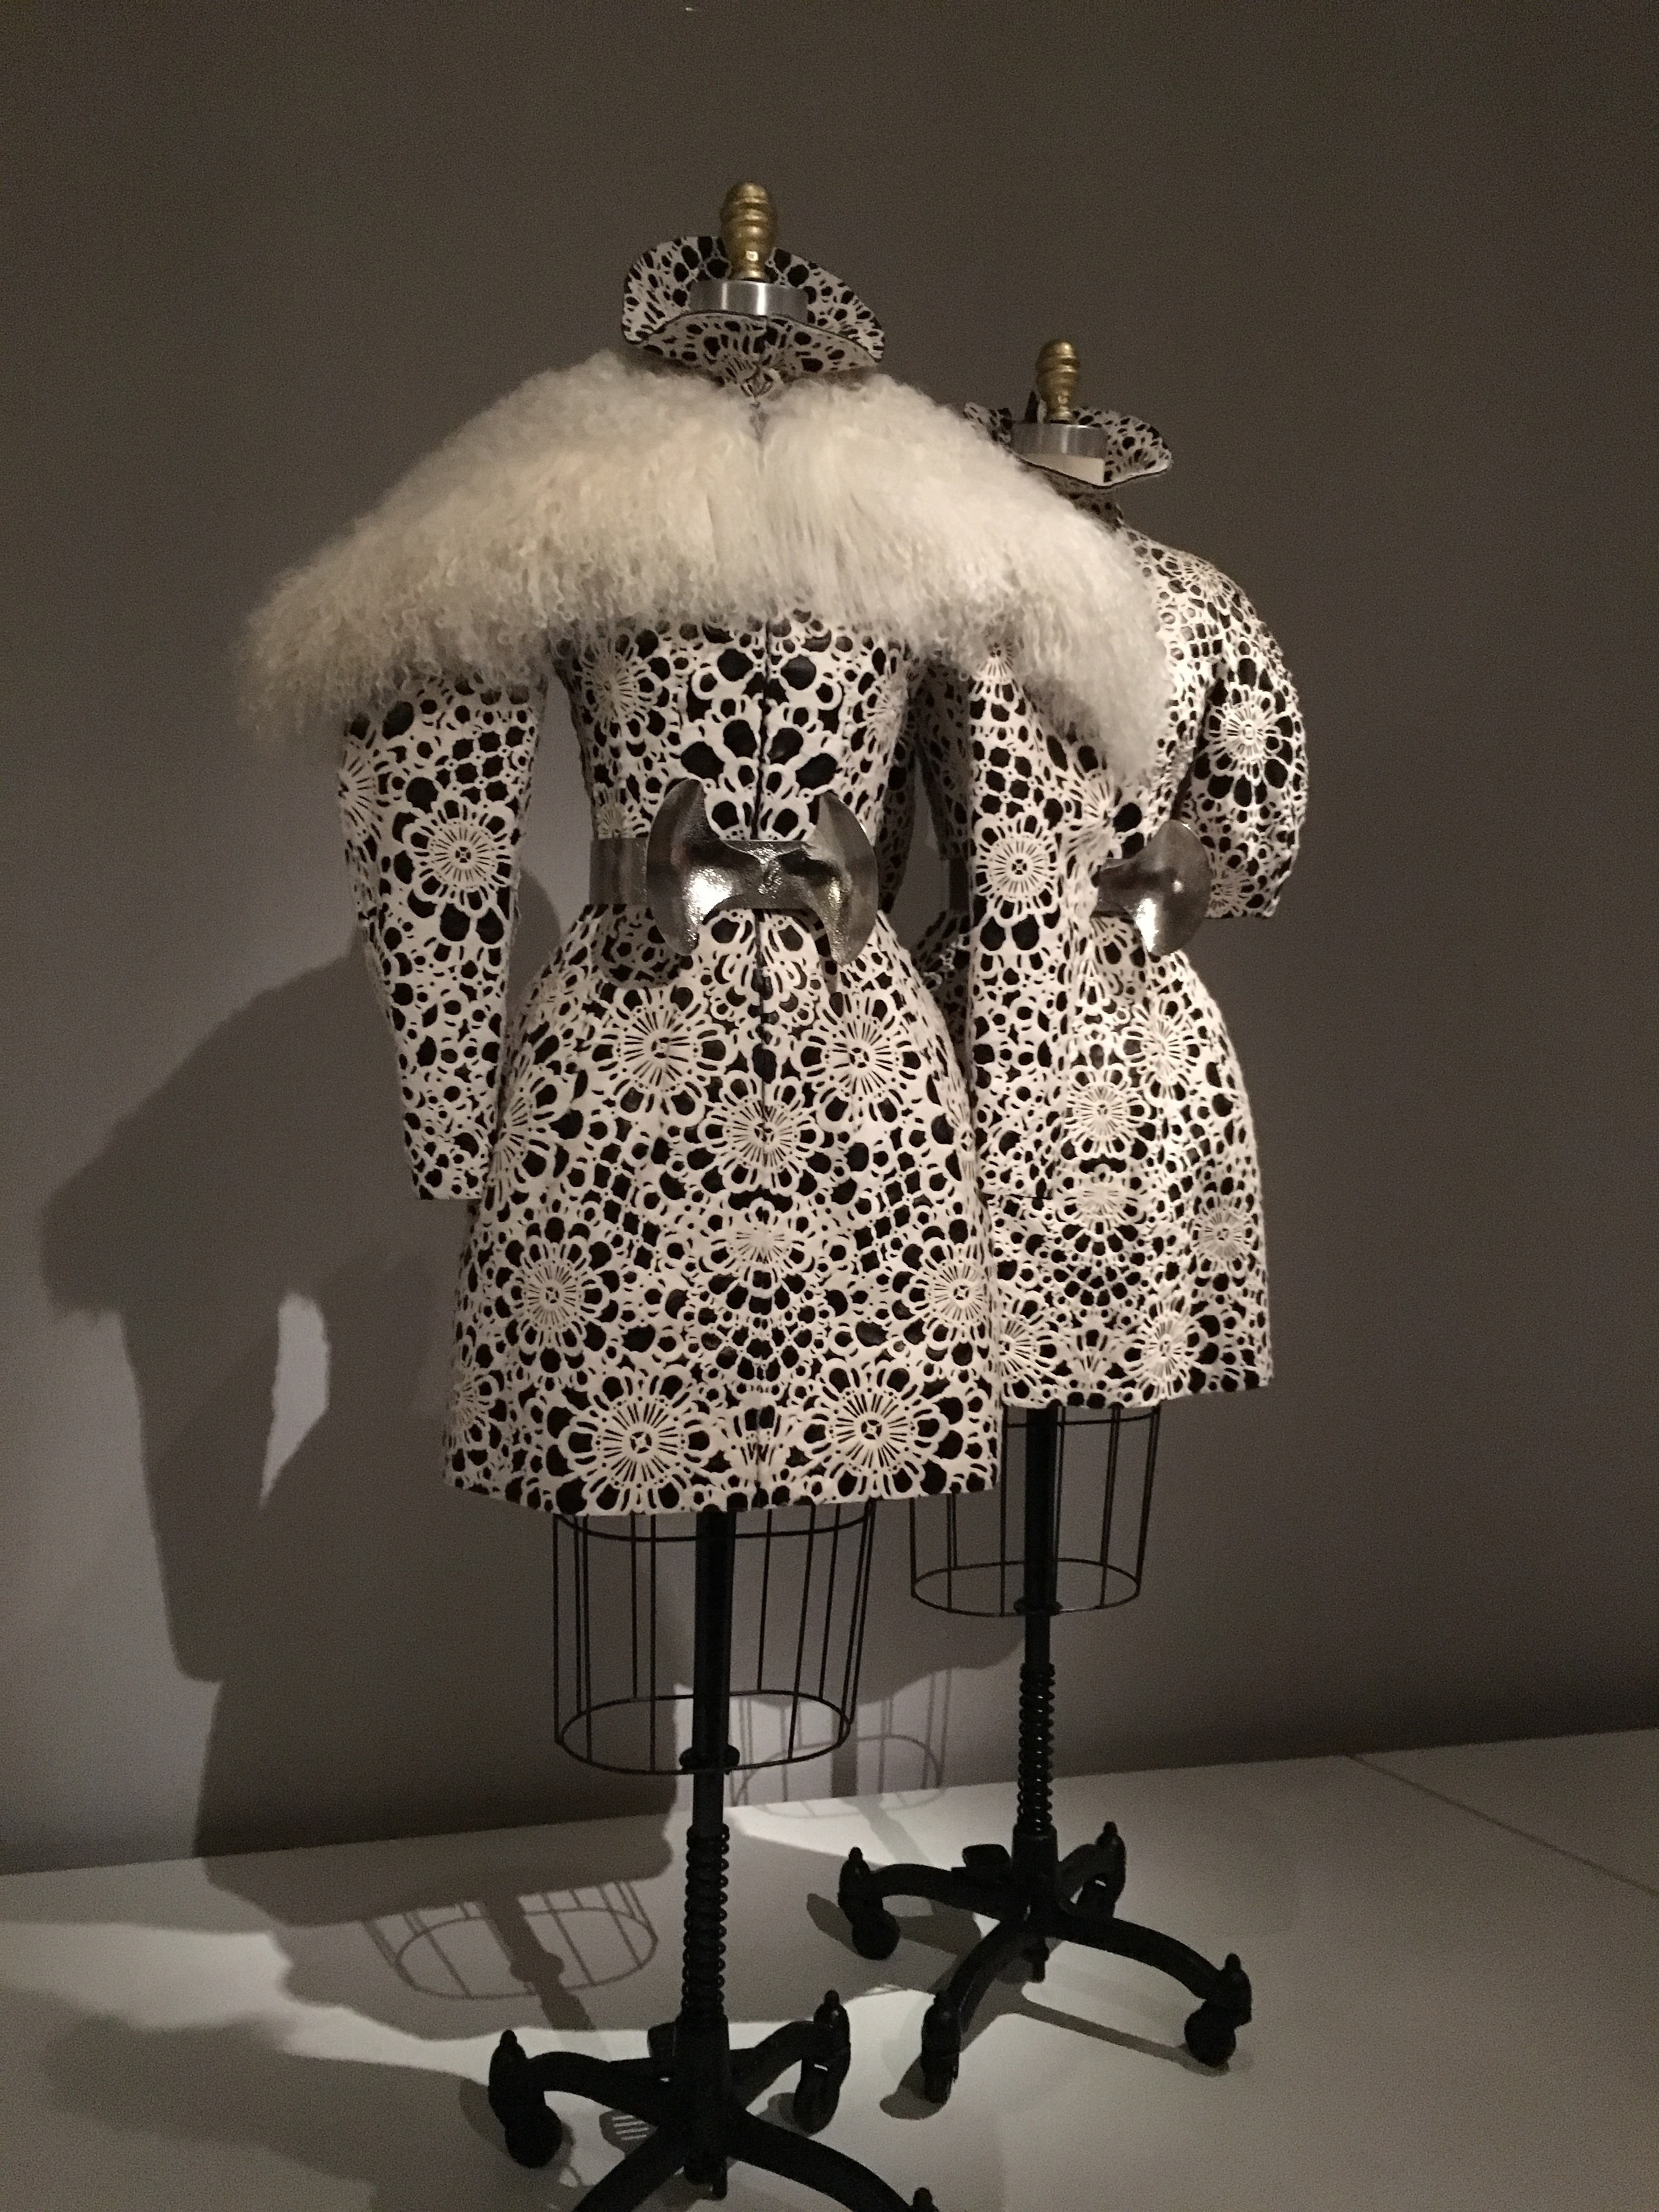 Alexander McQueen  Sarah Burton  AW 2012/201, prêt-à-porter  Laser-cut white pony skin bonded to black leather, machine-sewn and hand-finished with Mongolian wool